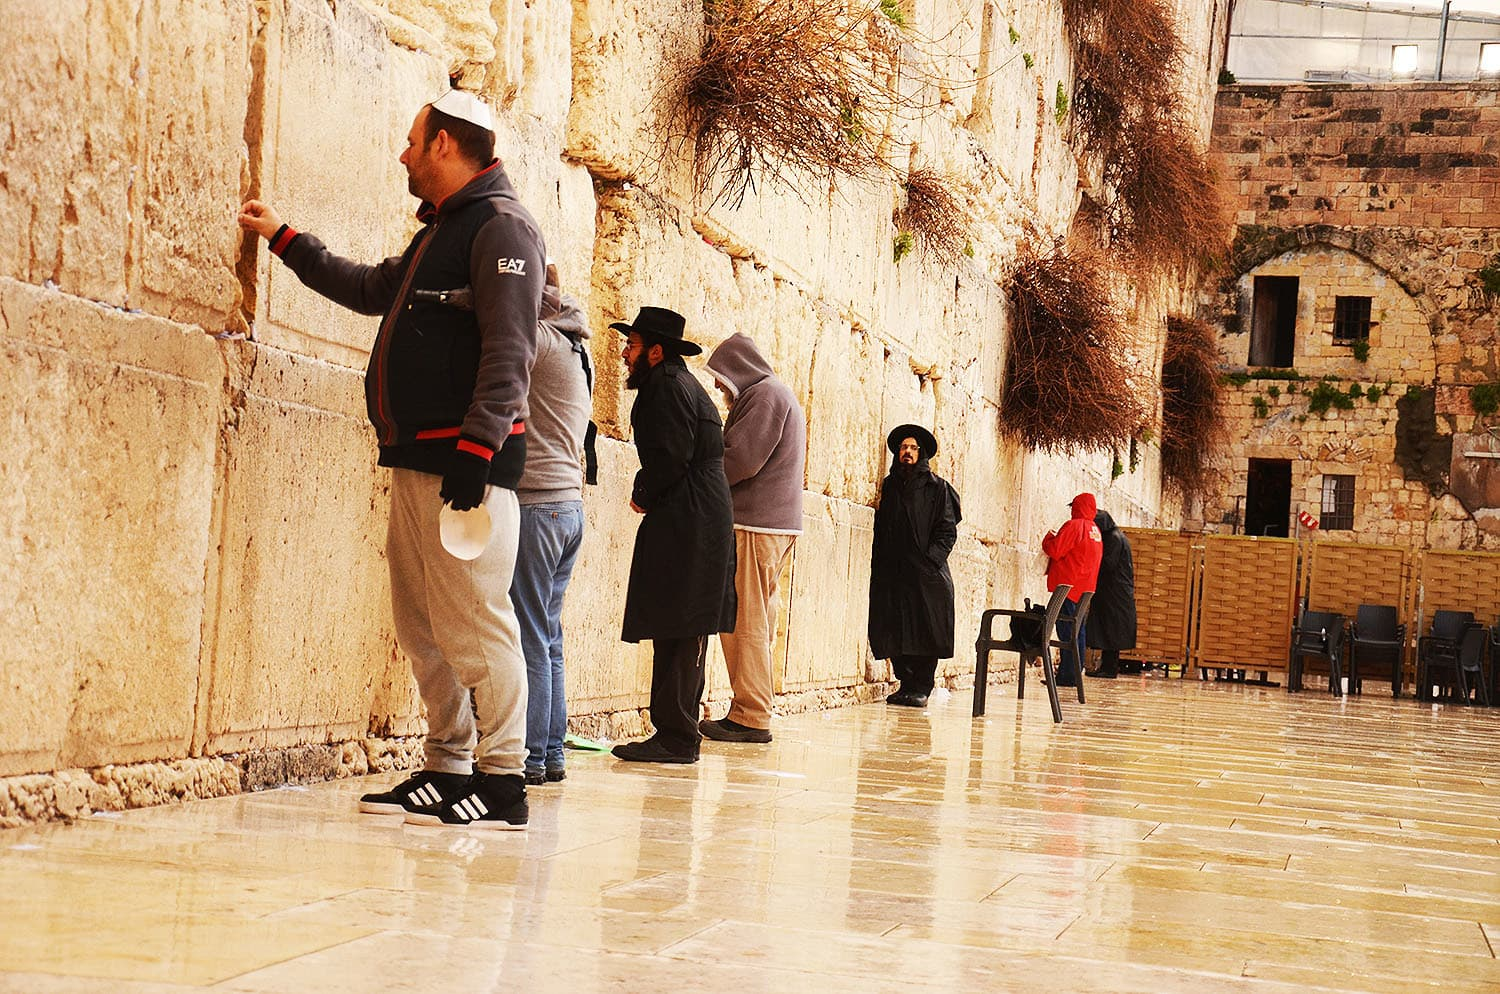 Jews praying at the Western Wall in Jerusalem.